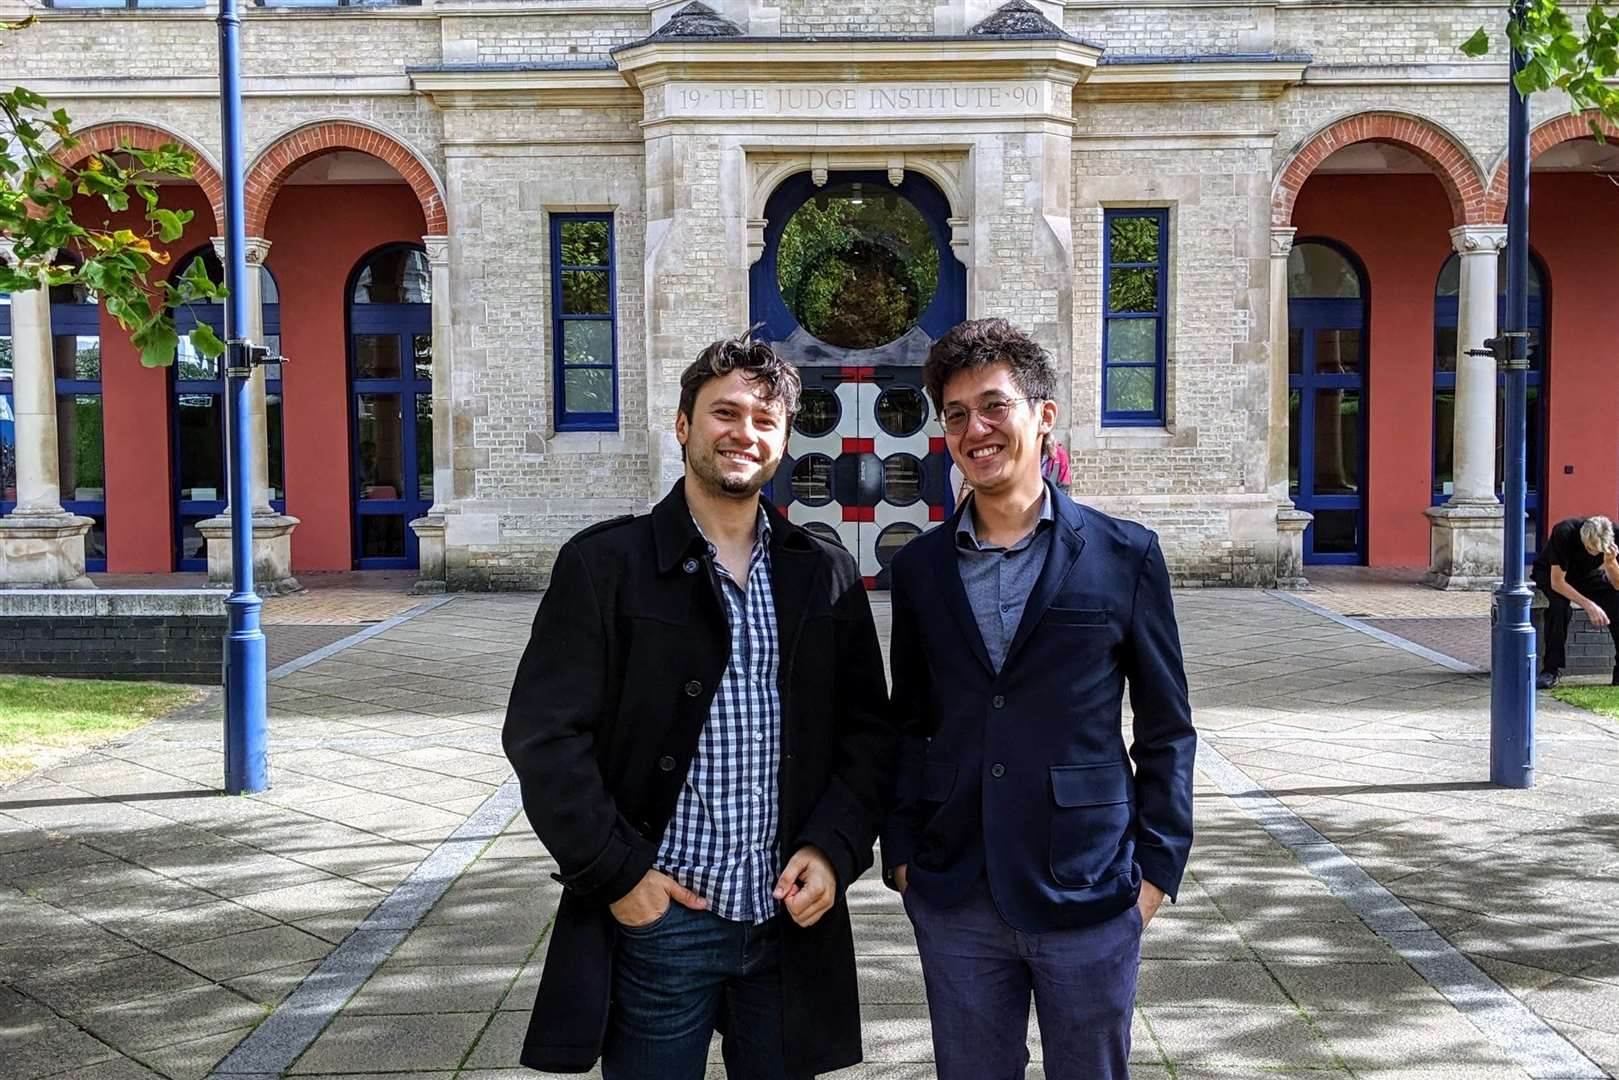 Medwise.ai co-founders Keith Tsui and Daniel Duma at the Judge Business School in Cambridge. Picture: Medwise.ai